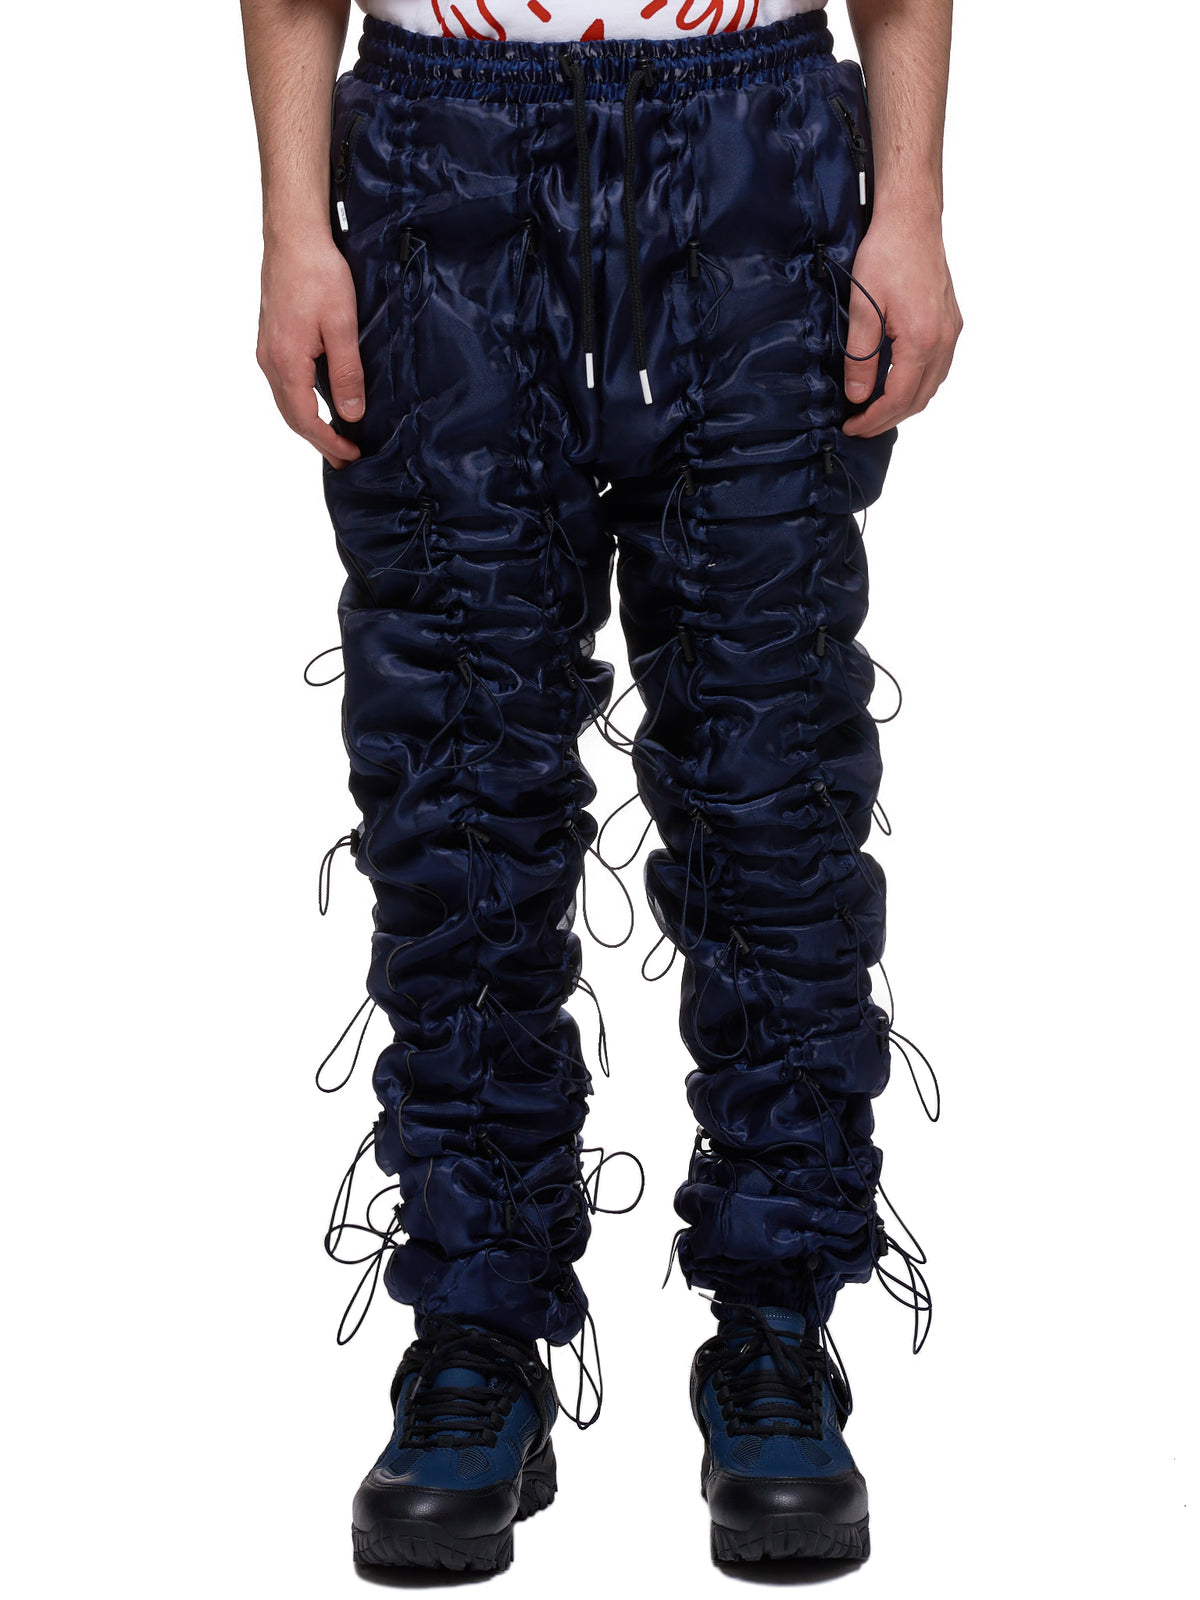 99%IS Gobchang Pants - Hlorenzo Front